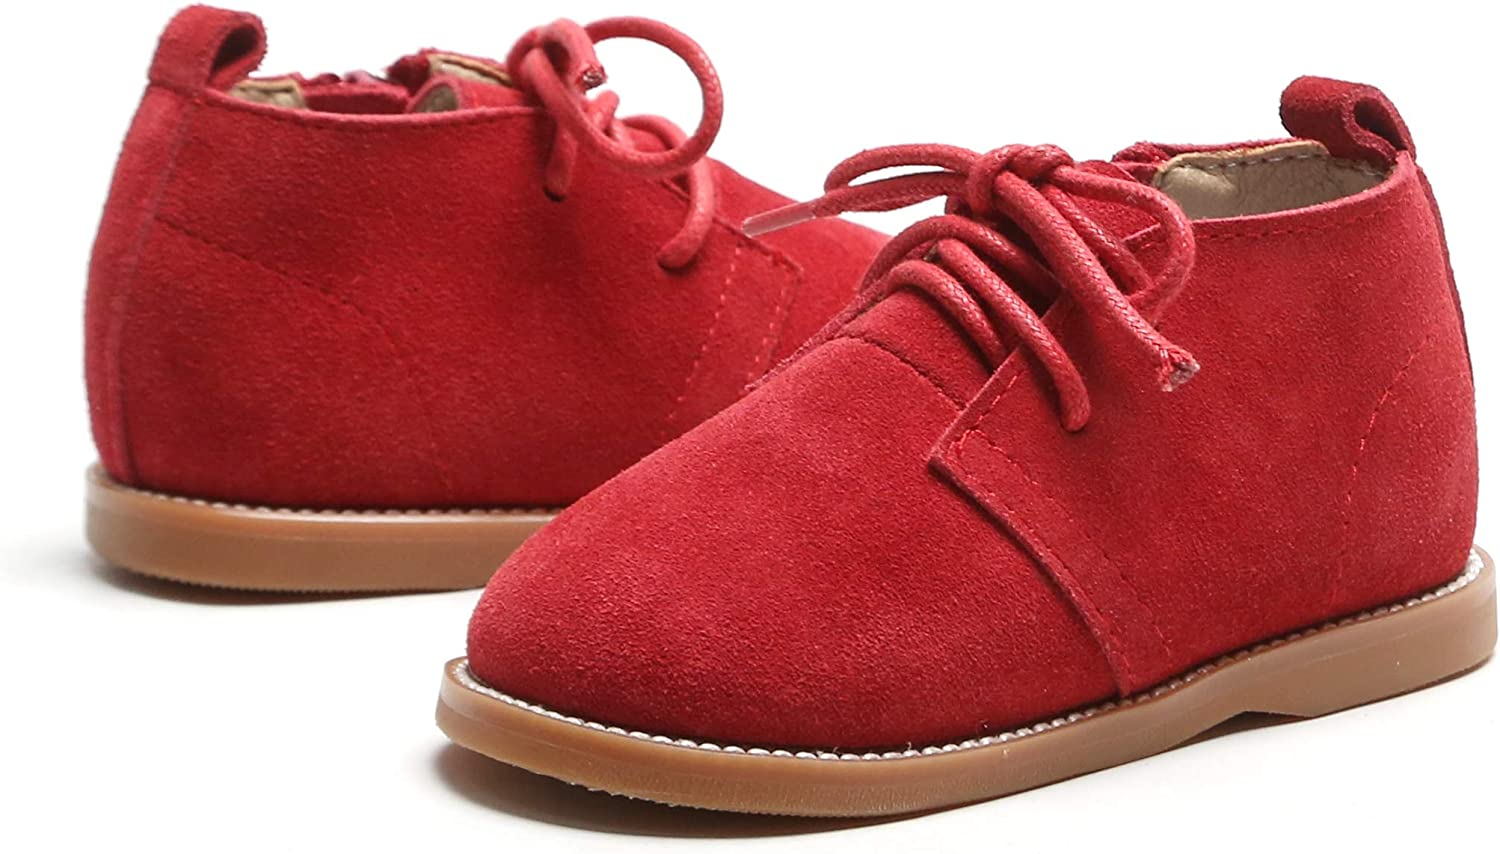 THEE BRON Girl's Mary Jane School Boot Max ! Super beauty product restock quality top! 83% OFF Dress Leather Sho Uniform